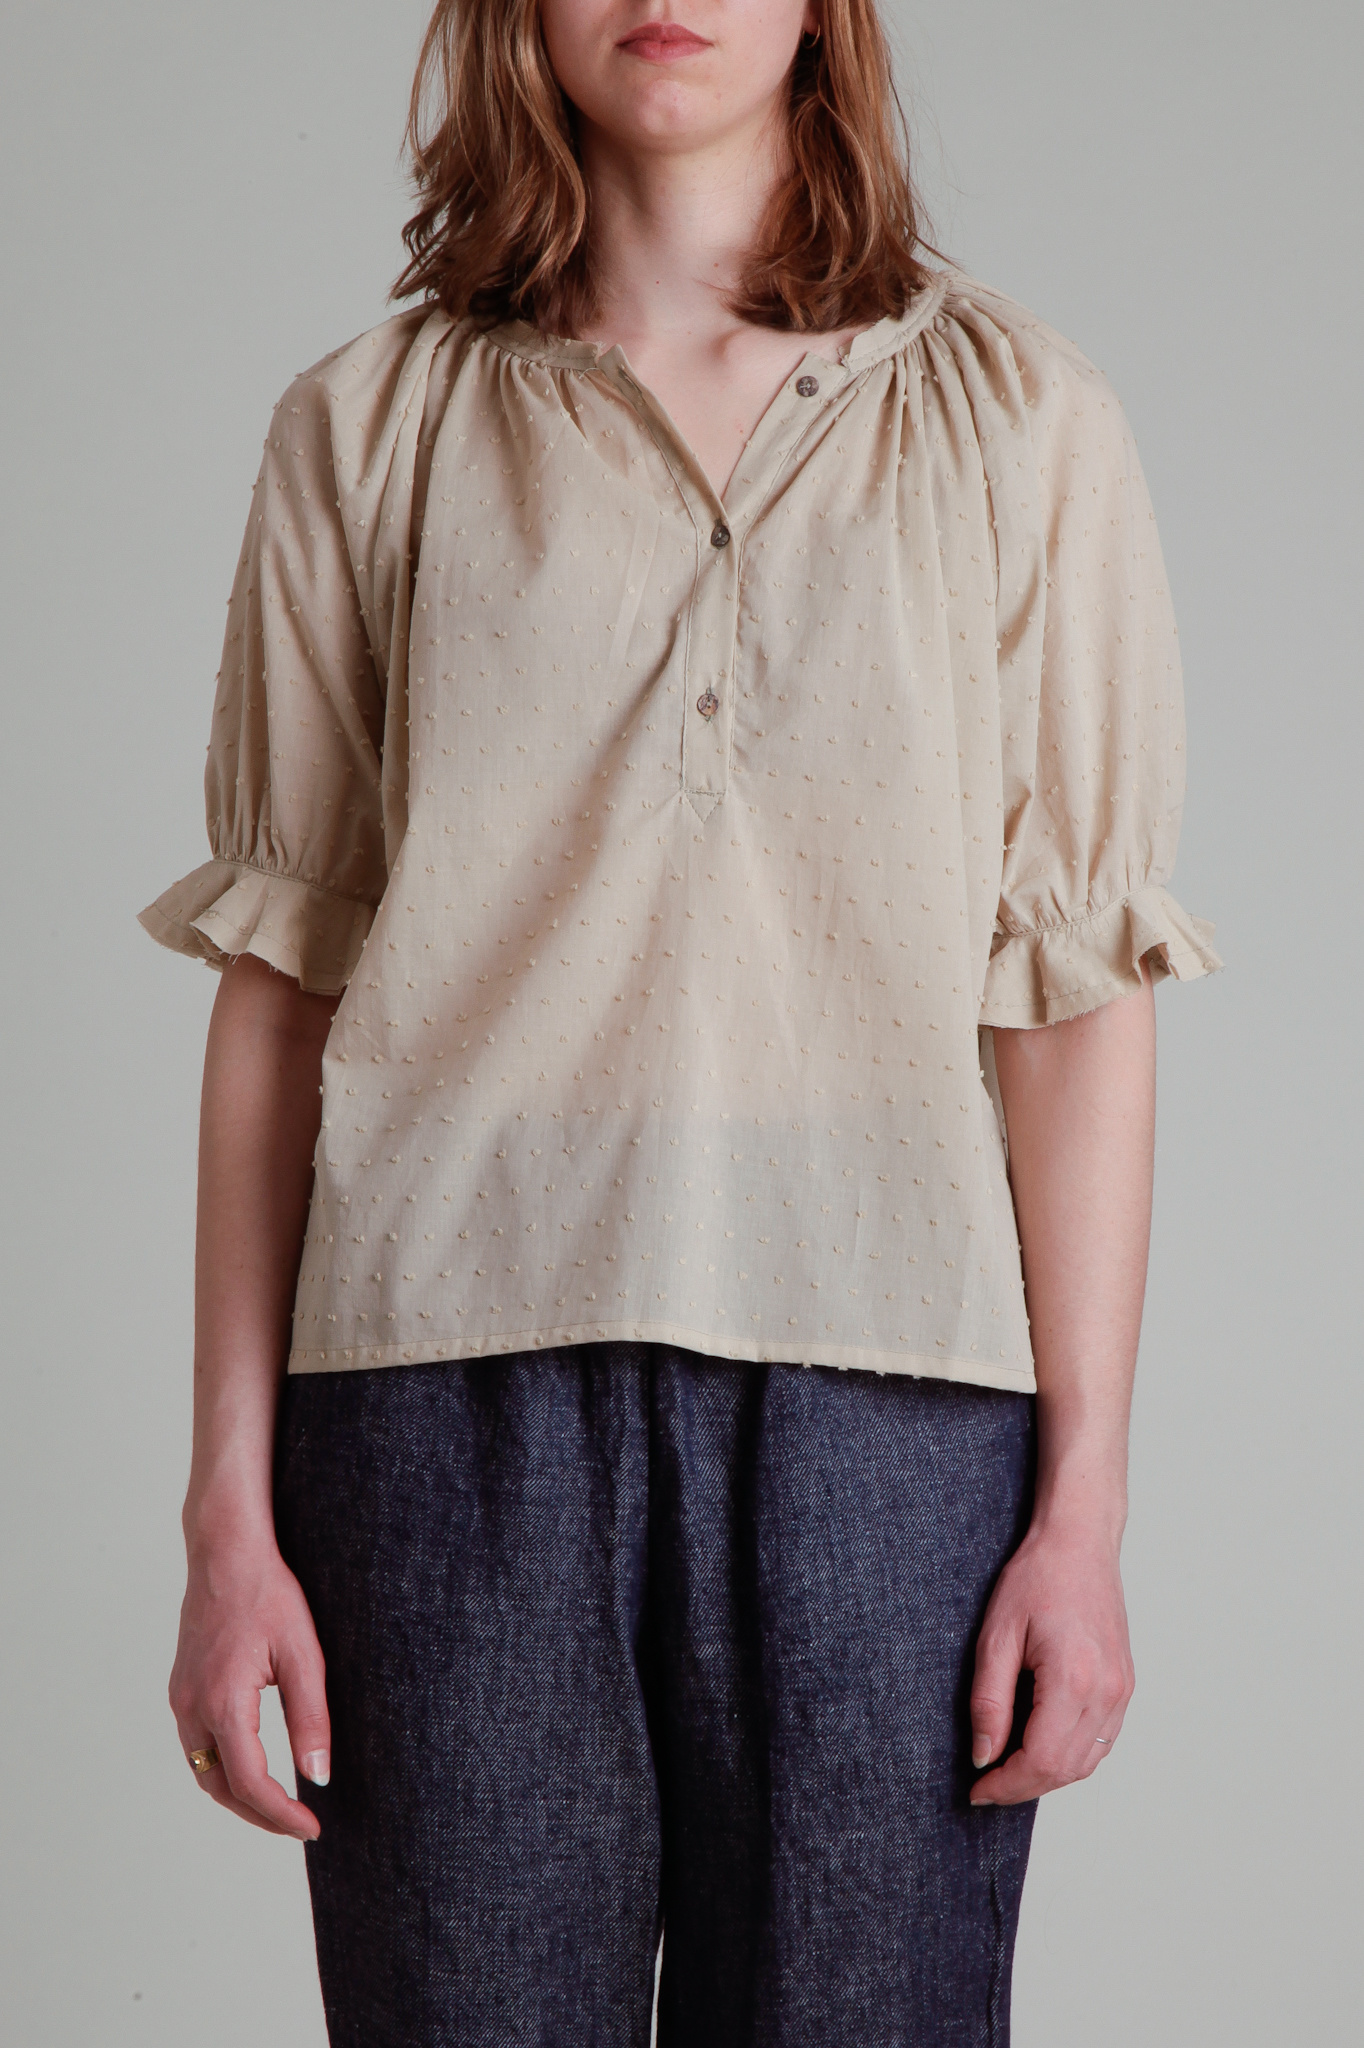 Moskiddos Moskiddos Beige Swiss Dot Cotton Blouse